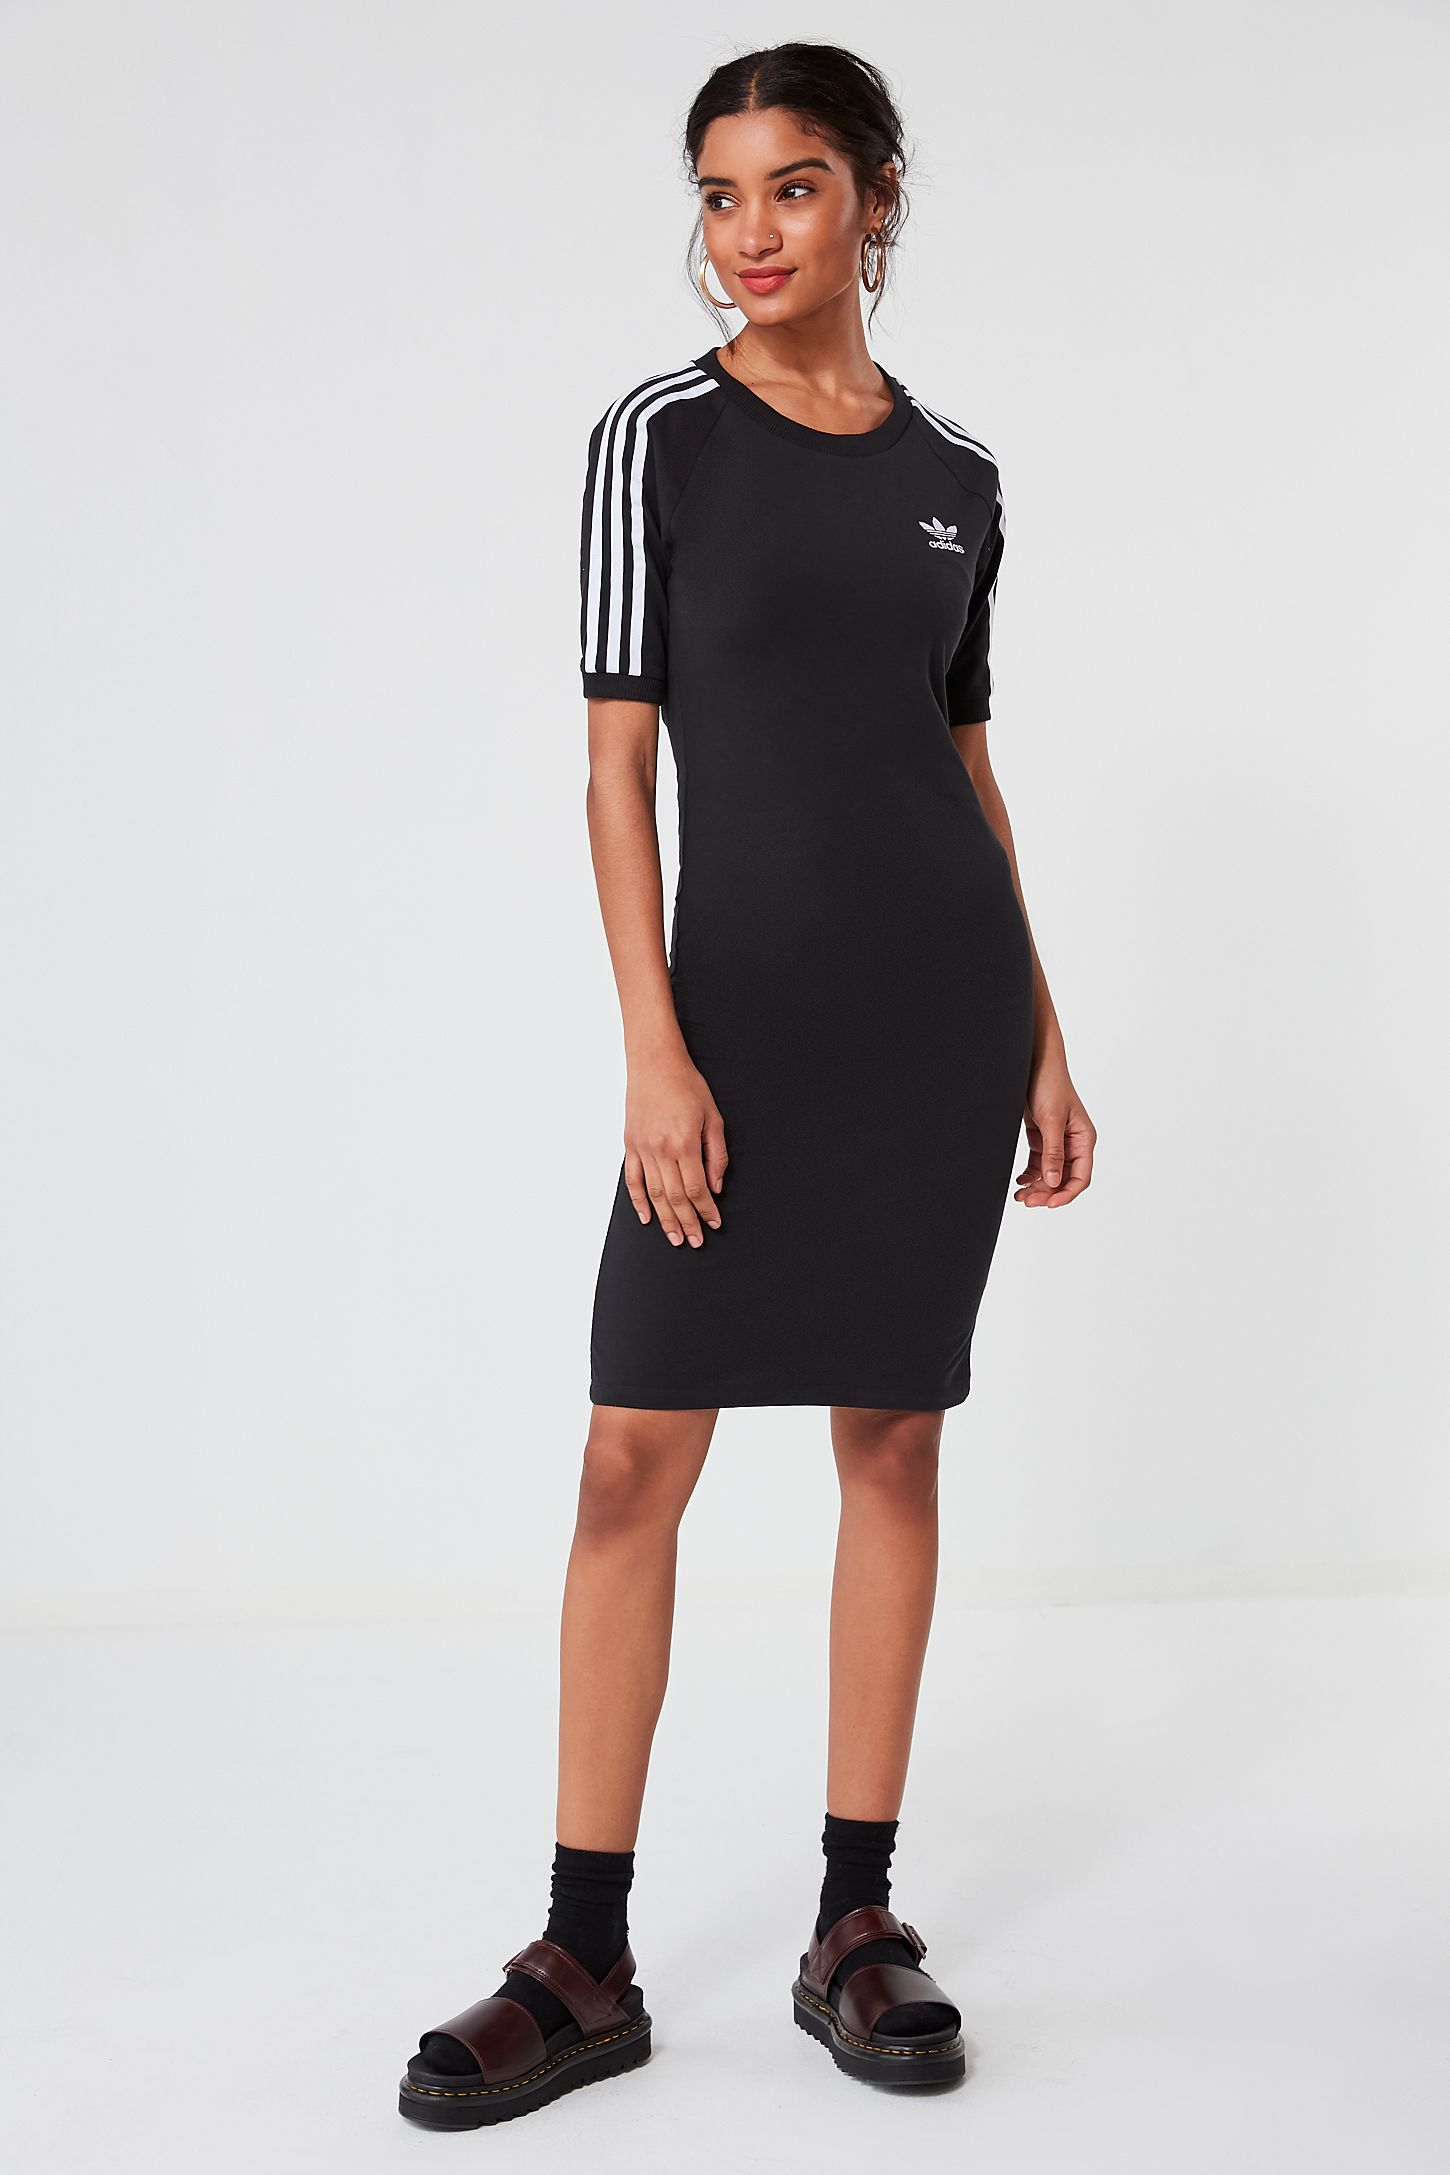 7bc66e1c704 adidas Originals 3 Stripe Midi T-shirt Dress. Tap image to zoom. Hover to  zoom. Double Tap to Zoom